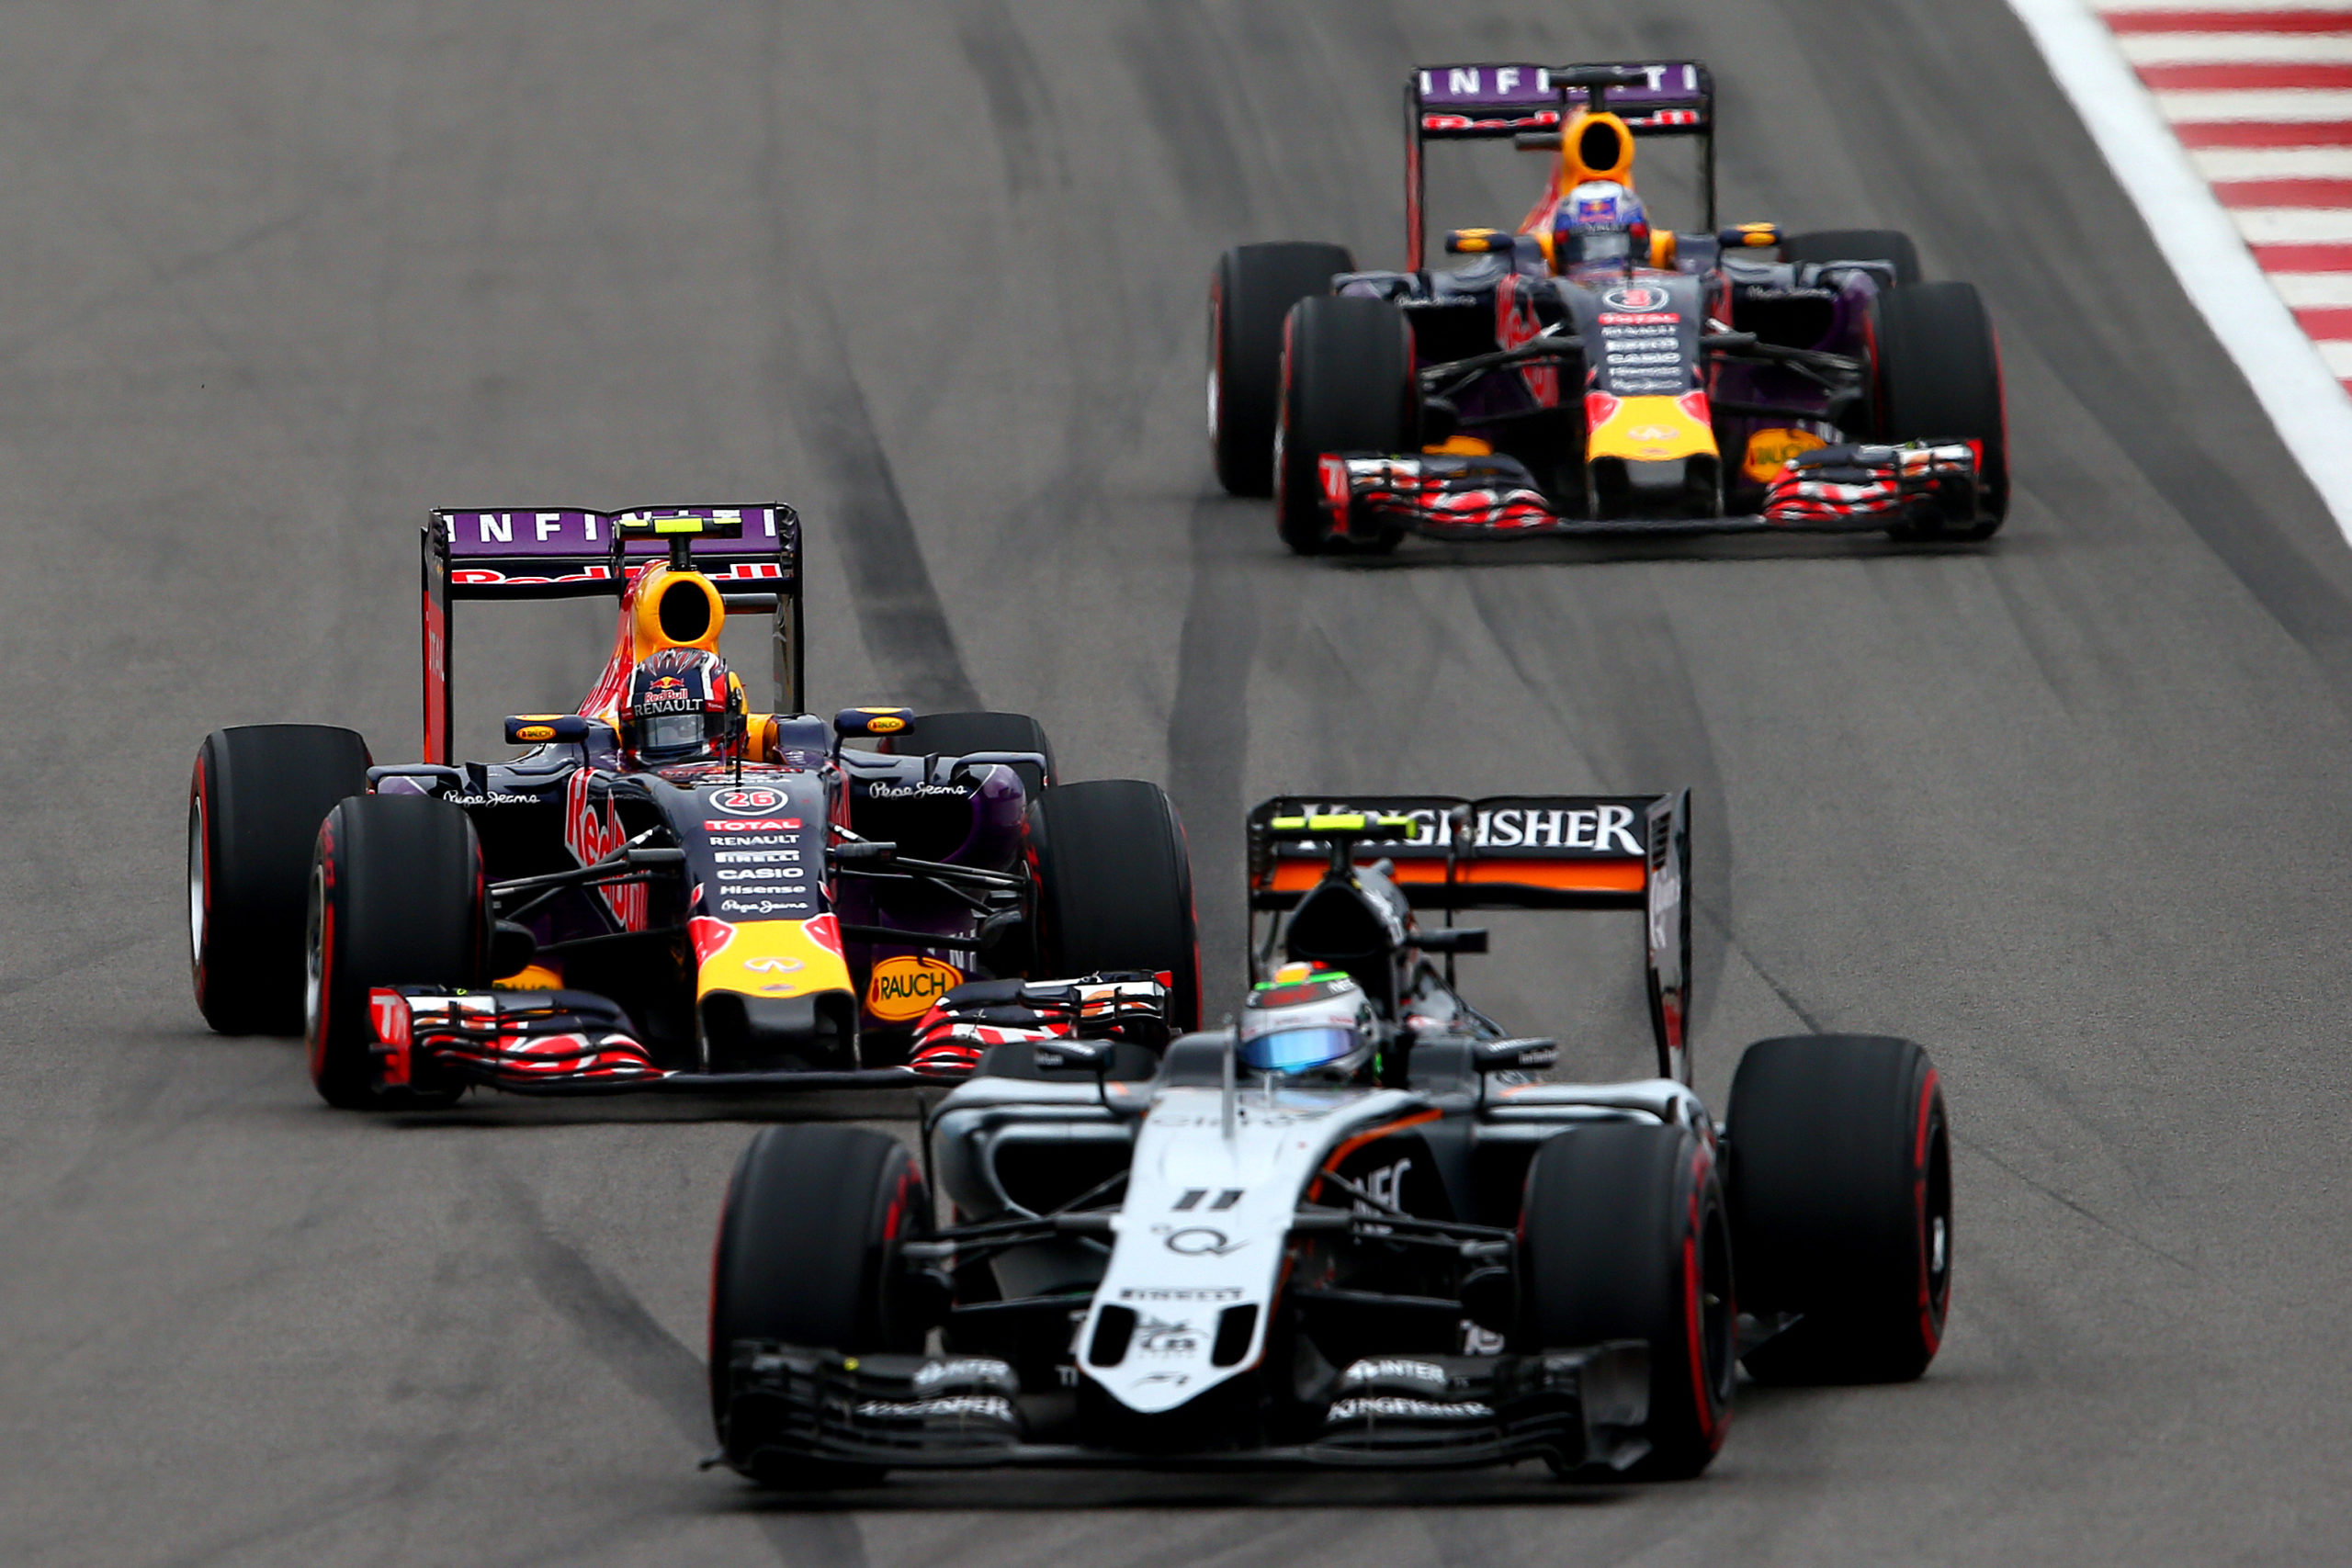 SOCHI, RUSSIA - OCTOBER 11:  Daniil Kvyat of Russia and Infiniti Red Bull Racing and Daniel Ricciardo of Australia and Infiniti Red Bull Racing drive behind Sergio Perez of Mexico and Force India during the Formula One Grand Prix of Russia at Sochi Autodrom on October 11, 2015 in Sochi, Russia.  (Photo by Mark Thompson/Getty Images) // Getty Images / Red Bull Content Pool  // SI201510110214 // Usage for editorial use only //